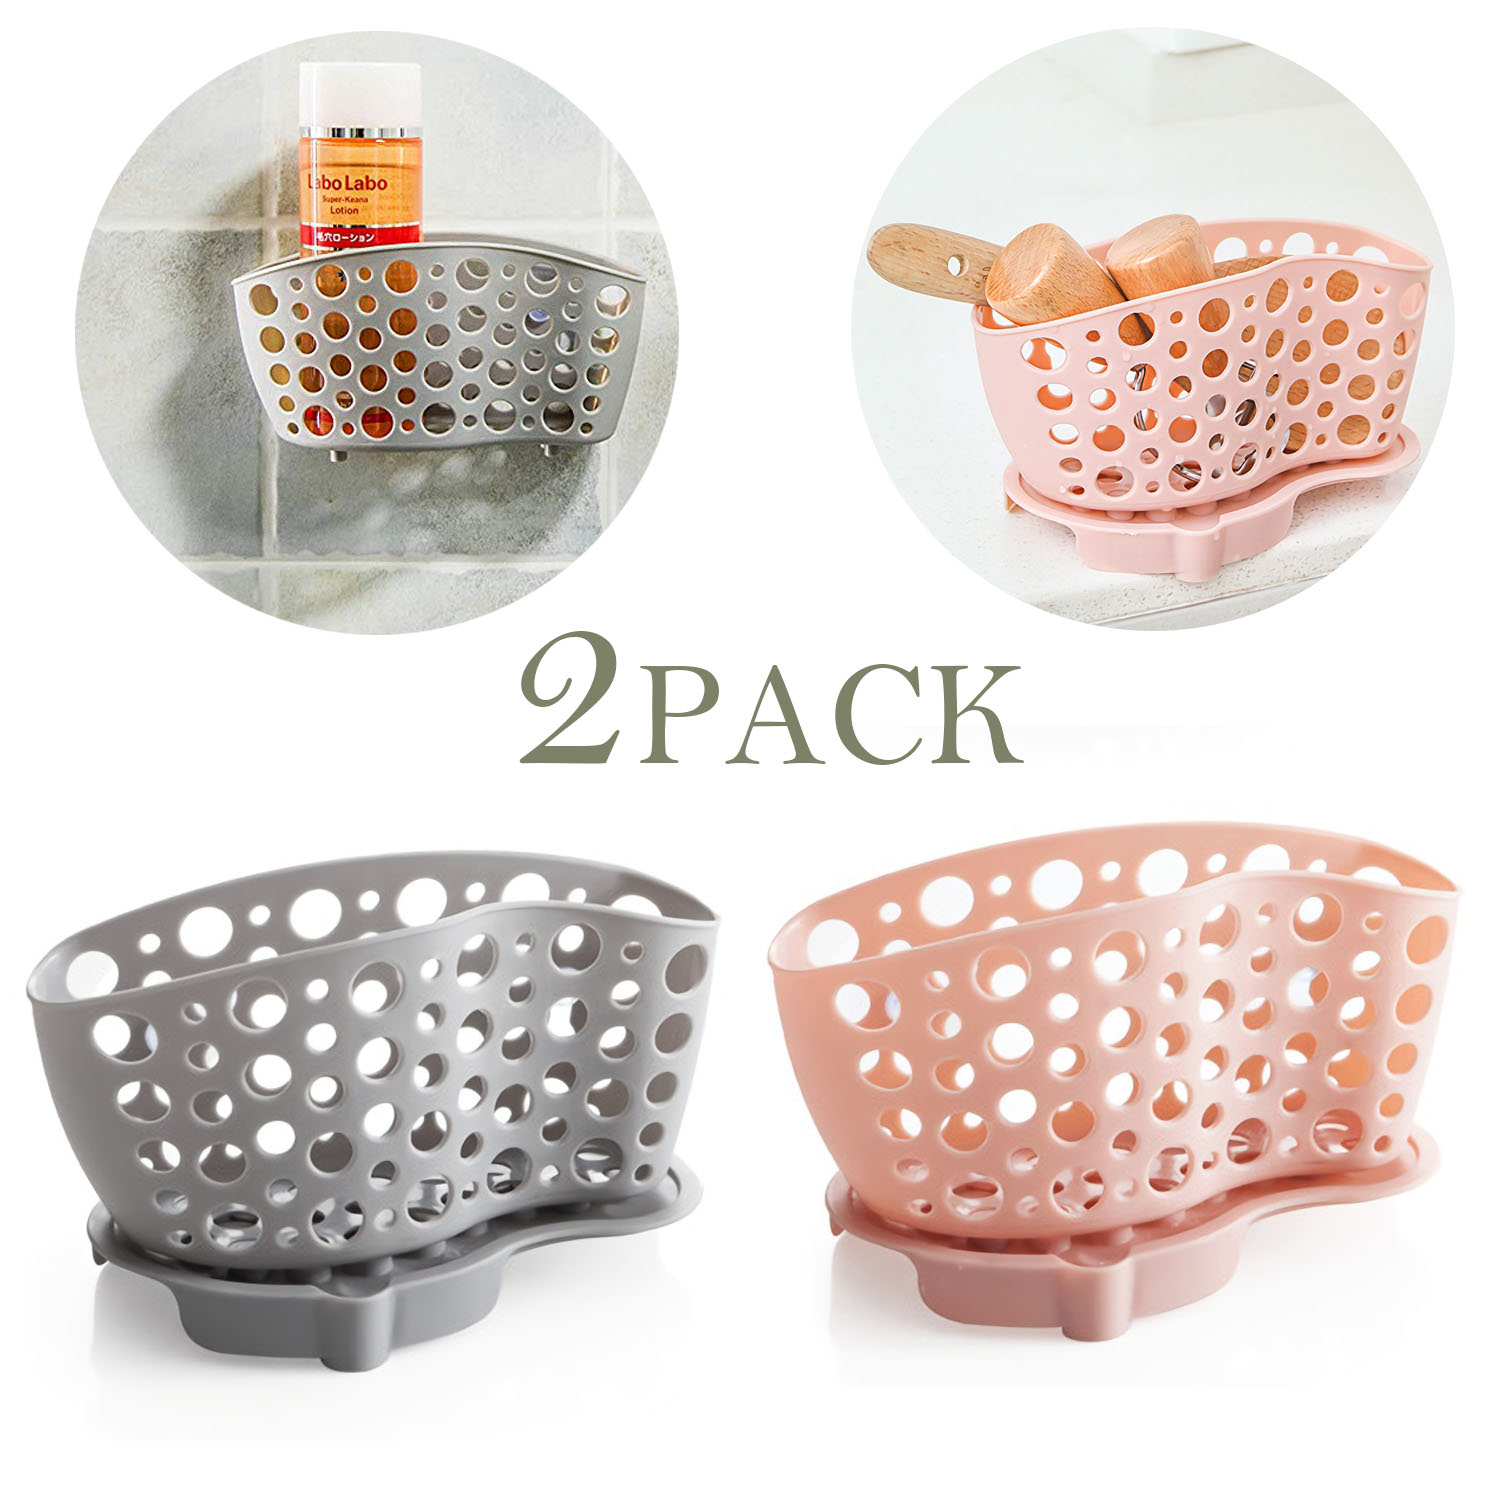 2PACK Saddle Silicone Sink Caddy, Sponge Soap Brush Holder Basket Organizer Storage for Kitchen(Random Color)